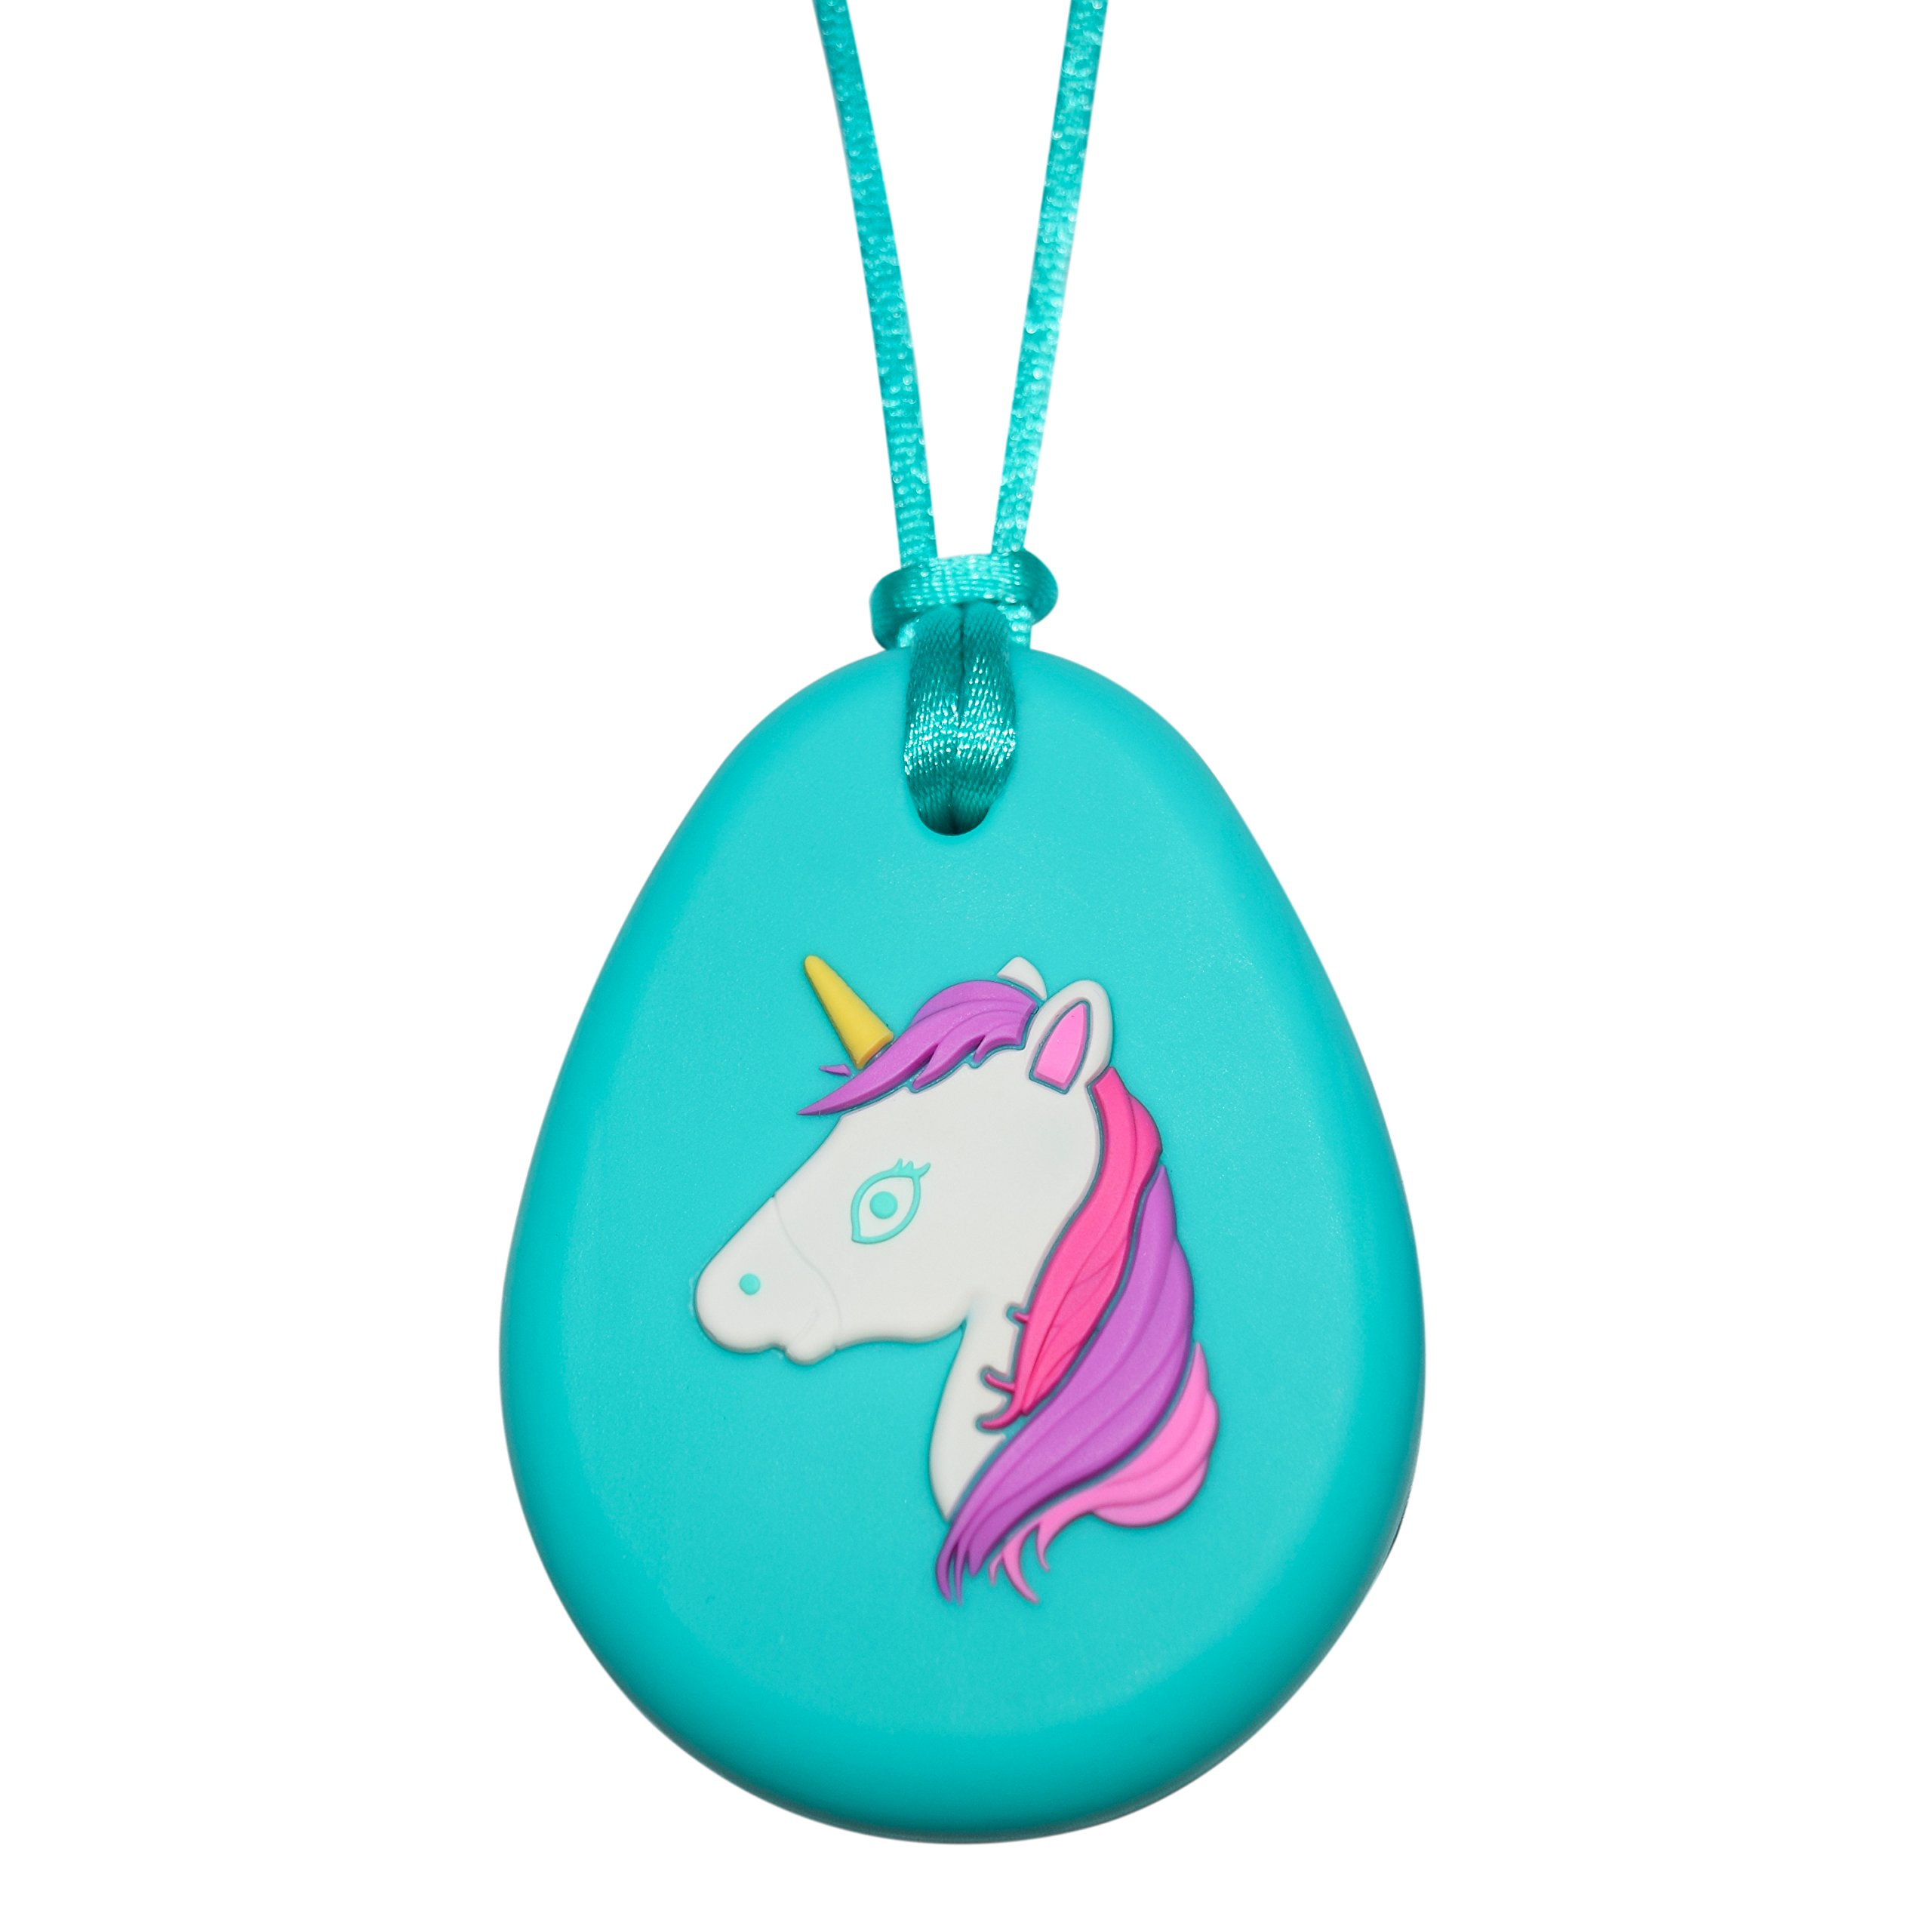 Sensory Oral Motor Aide Chewelry Necklace - Chewy Fidget Toy – Unicorn (Aqua)